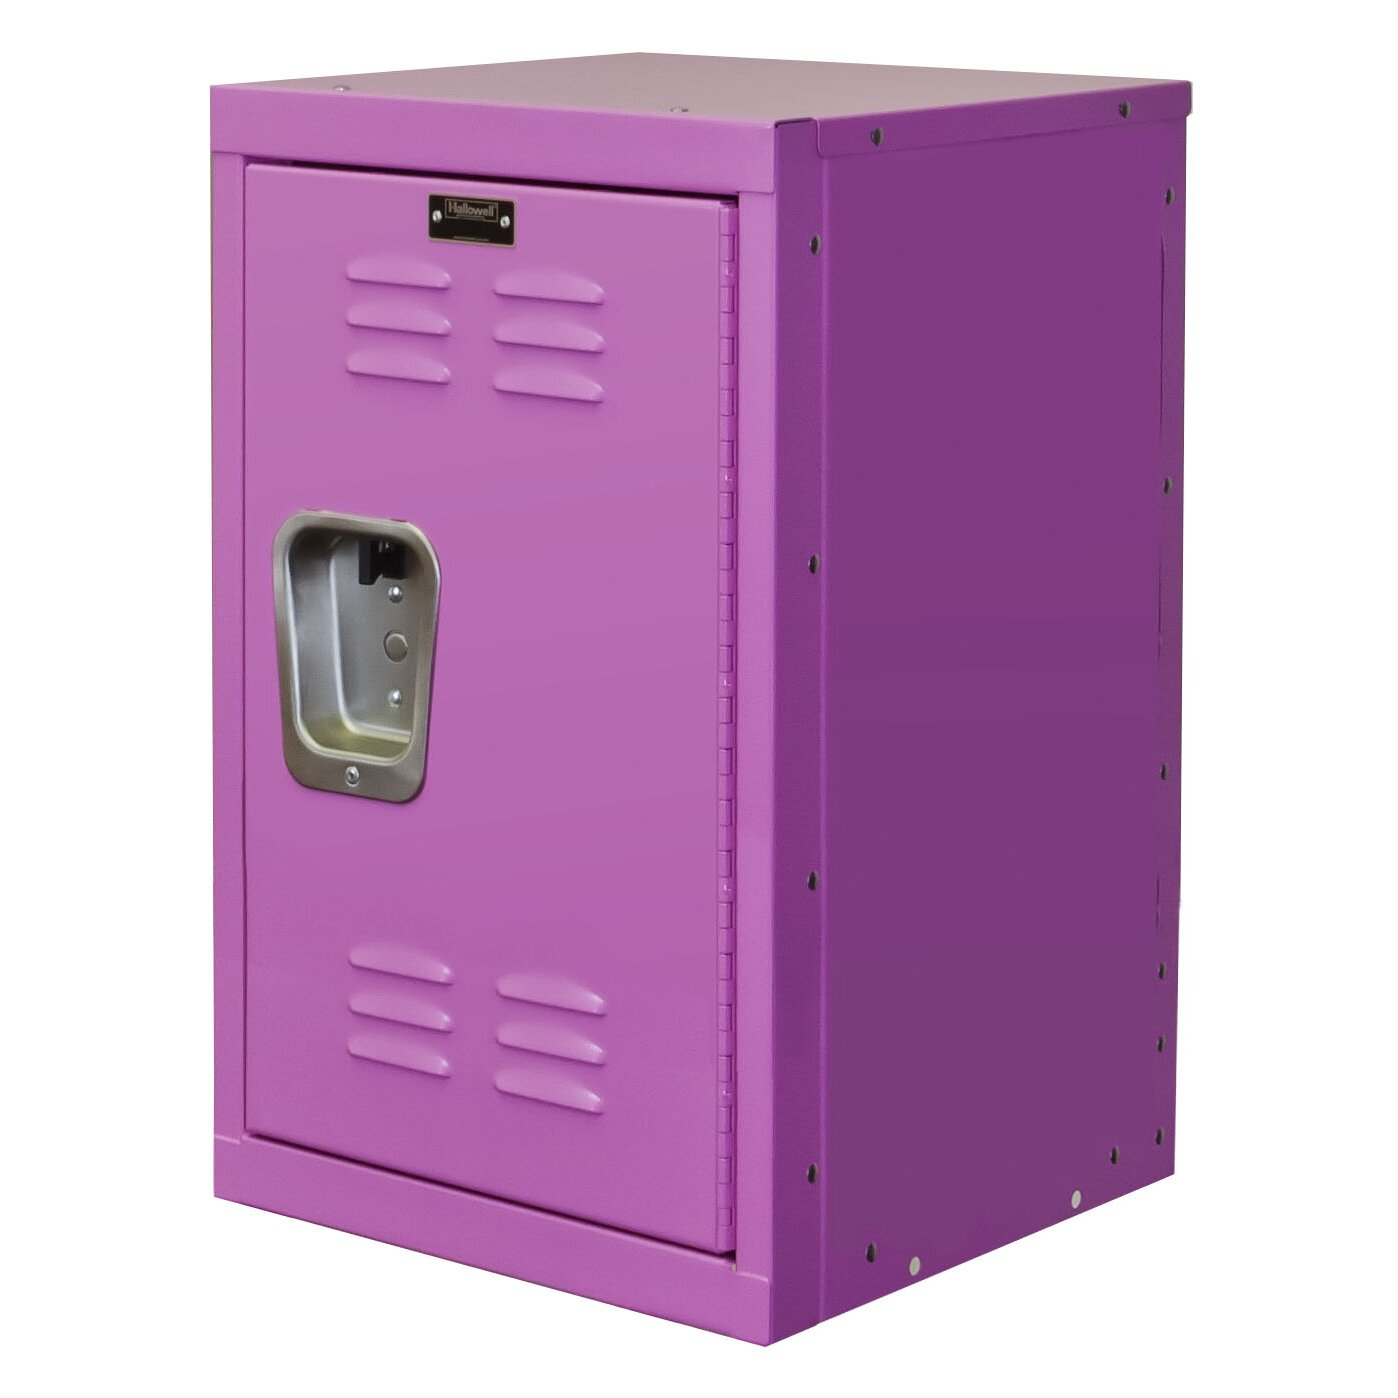 You searched for: locker furniture. Good news! Etsy has thousands of handcrafted and vintage products that perfectly fit what you're searching for. Discover all the extraordinary items our community of craftspeople have to offer and find the perfect gift for your loved one (or yourself!) today.